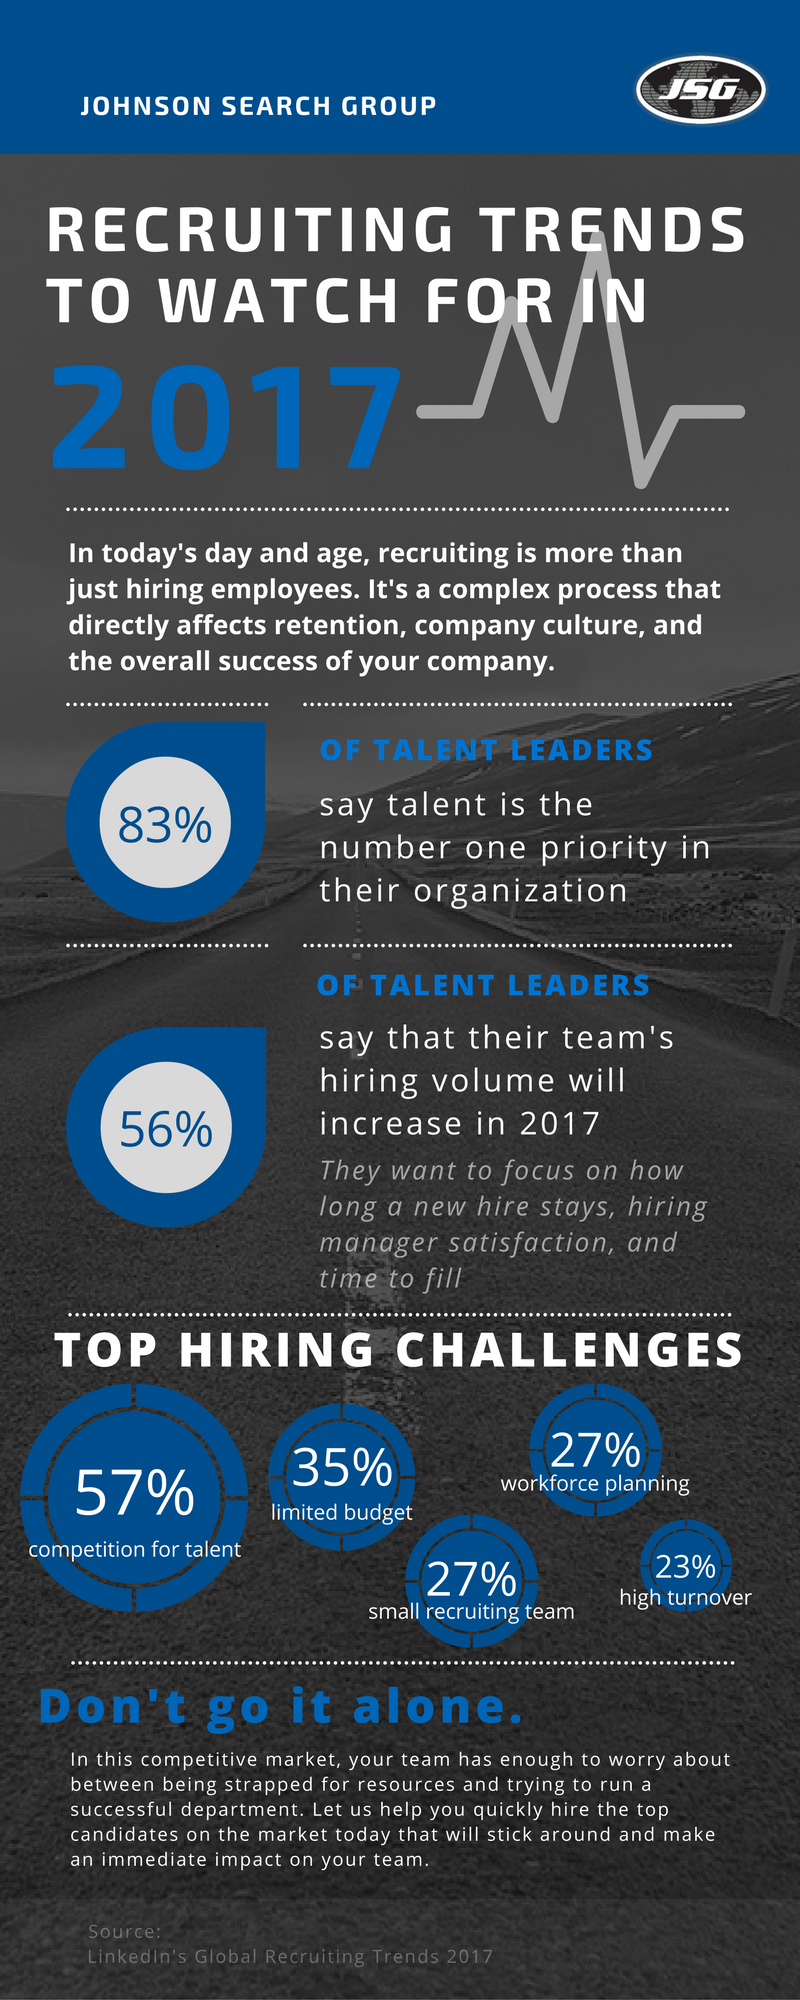 Recruiting Trends To Watch For In 2017